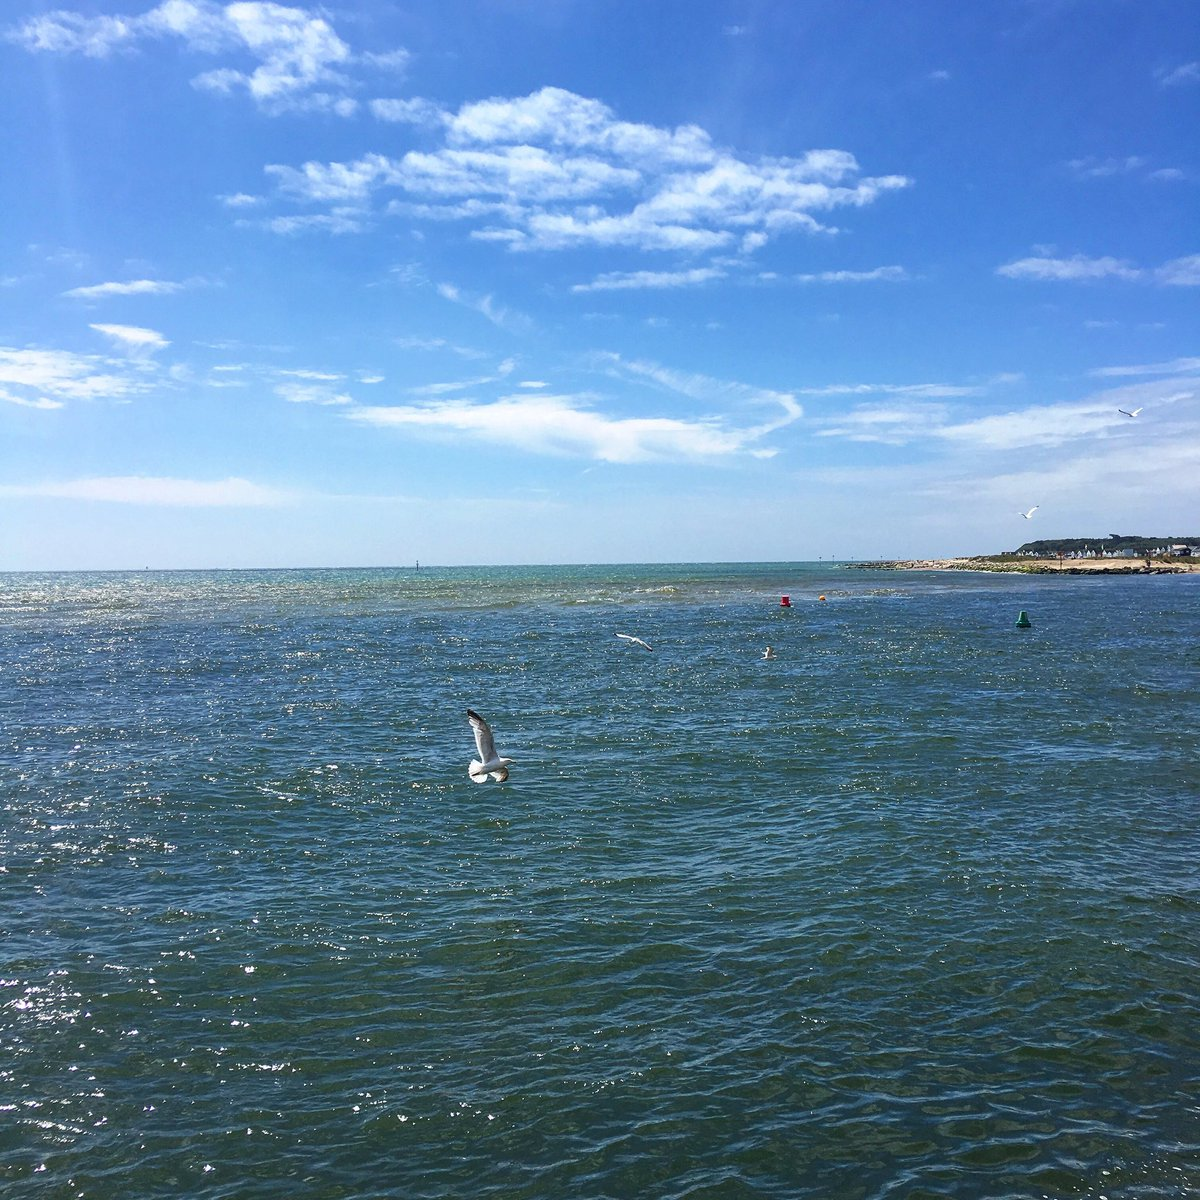 Simply Stunning along the beautiful #Dorset coast today. #HengistburyHead in the distance as we experience #MudefordQuay #Mudeford as part of our preview for our #SummerUK series. #DorsetHour #SatchatUK<br>http://pic.twitter.com/a3wl5b09tr